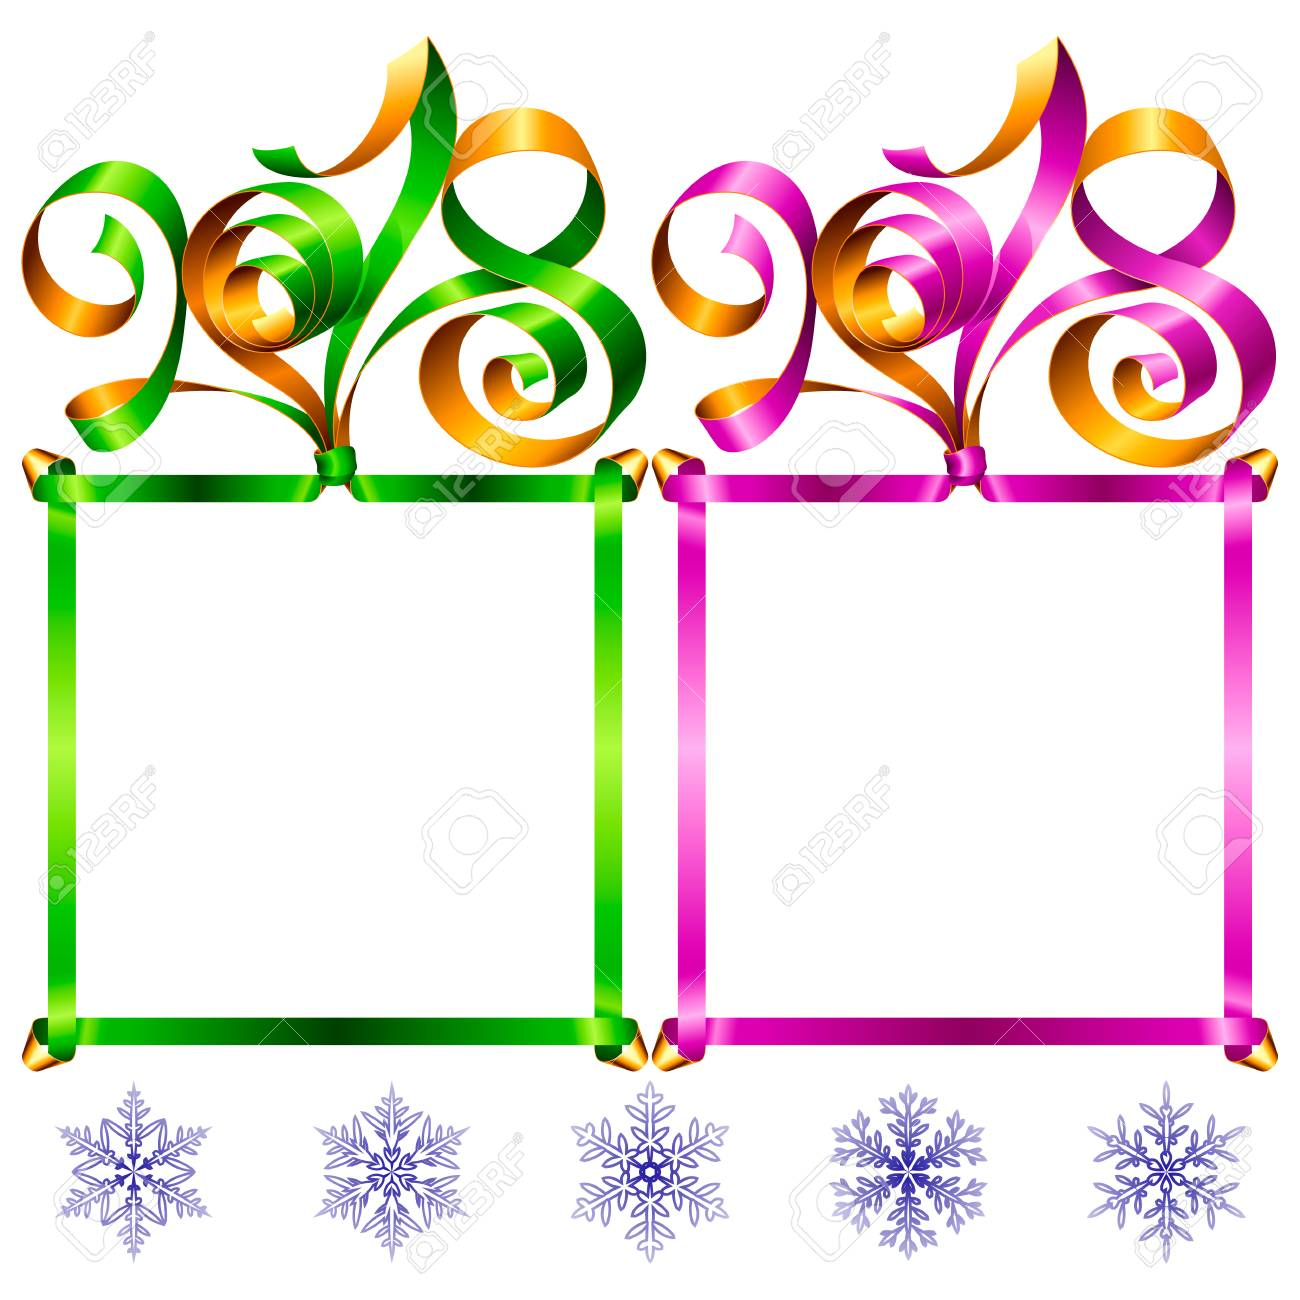 2018 Ribbons Lettering And Square Frames Set For New Year Greeting ...